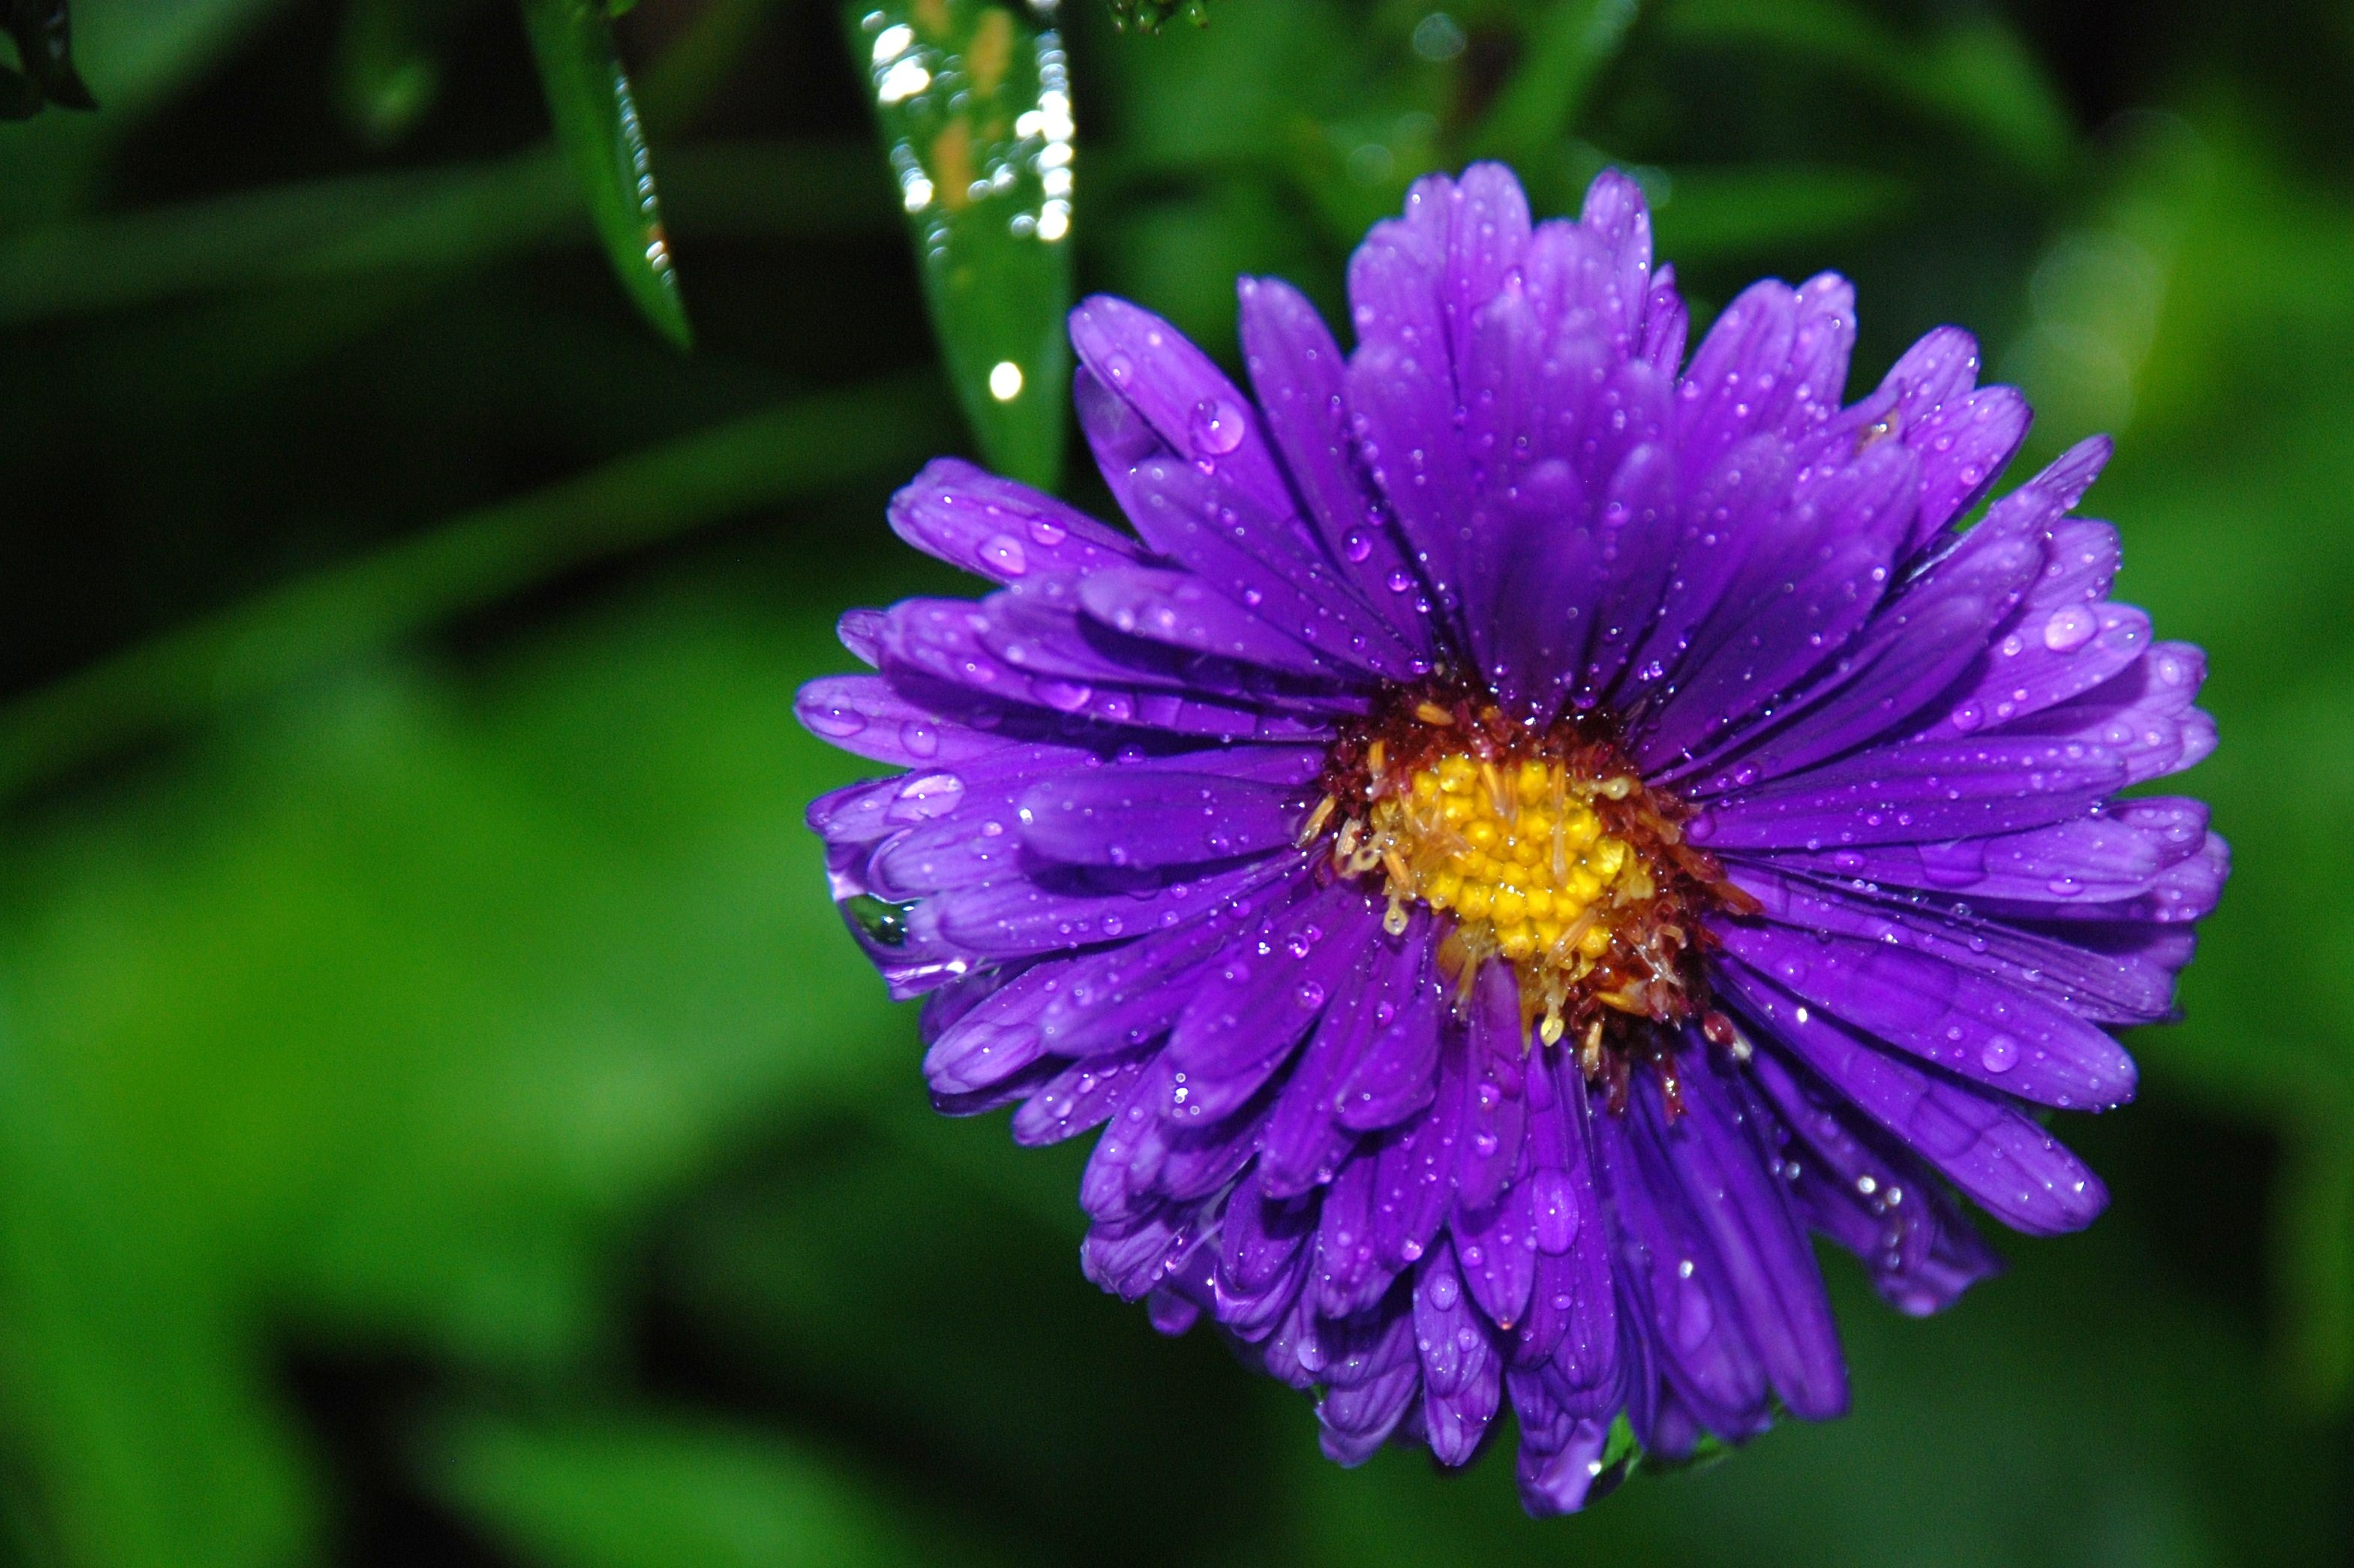 Purple Flower With A Yellow Center In Drops Of Water Free Image